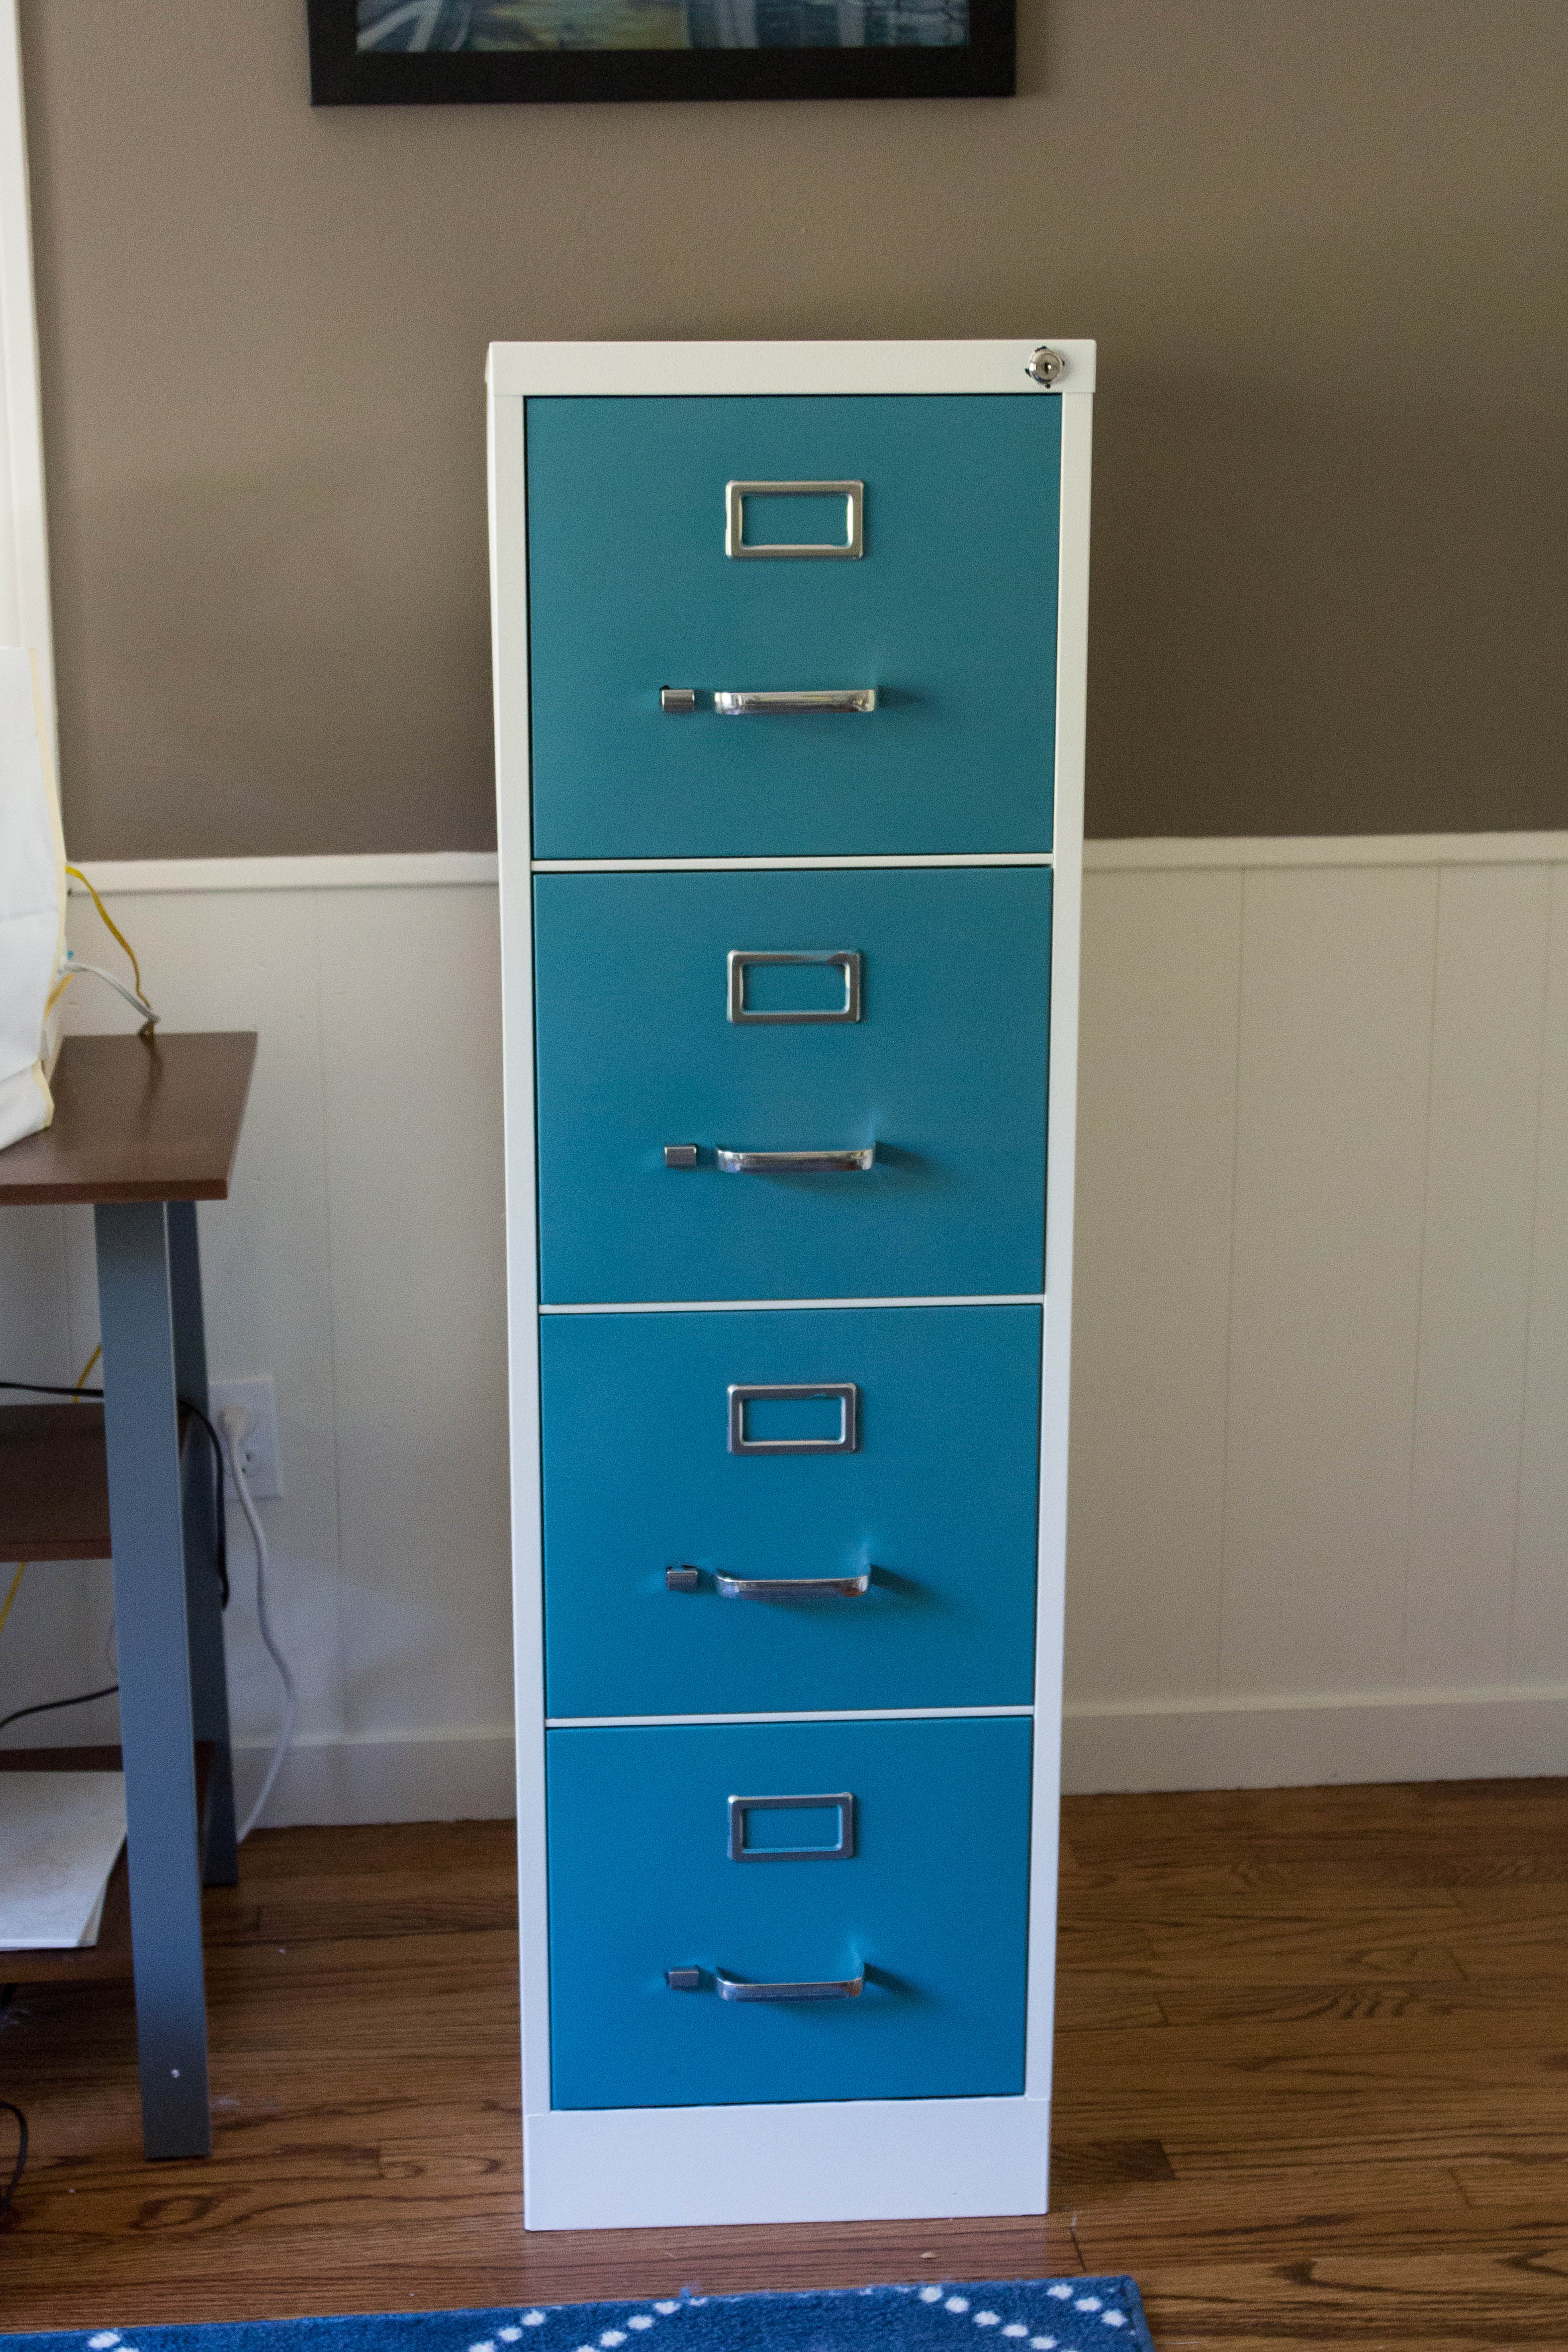 Freshly Painted 4 Drawer Metal File Cabinet. A Simple Paint Job Makes Such A